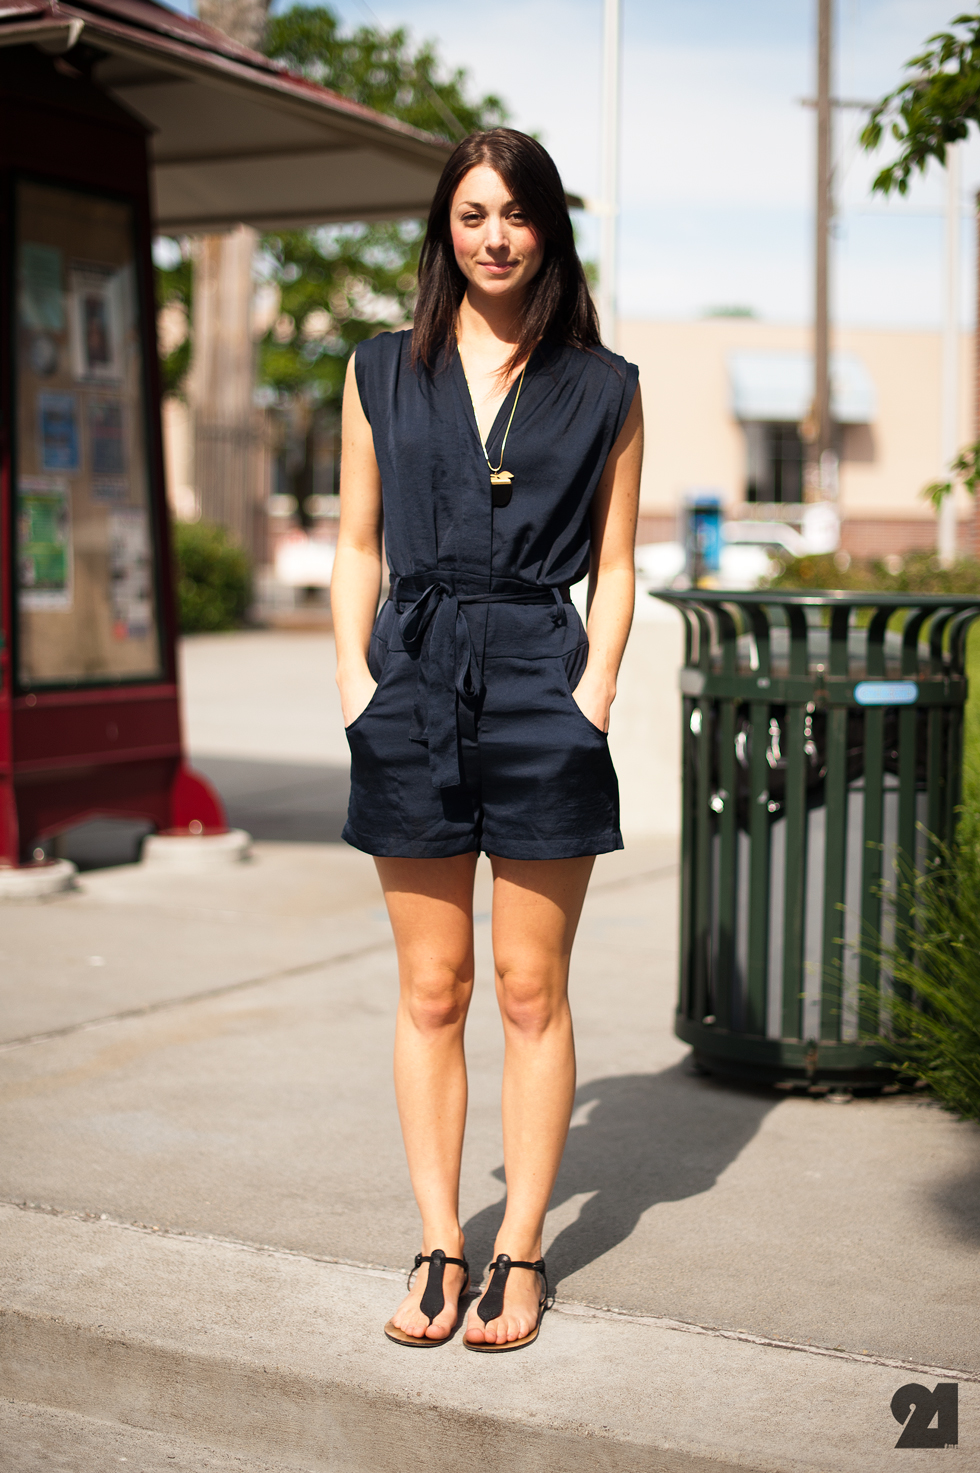 street-style-rompers (9)